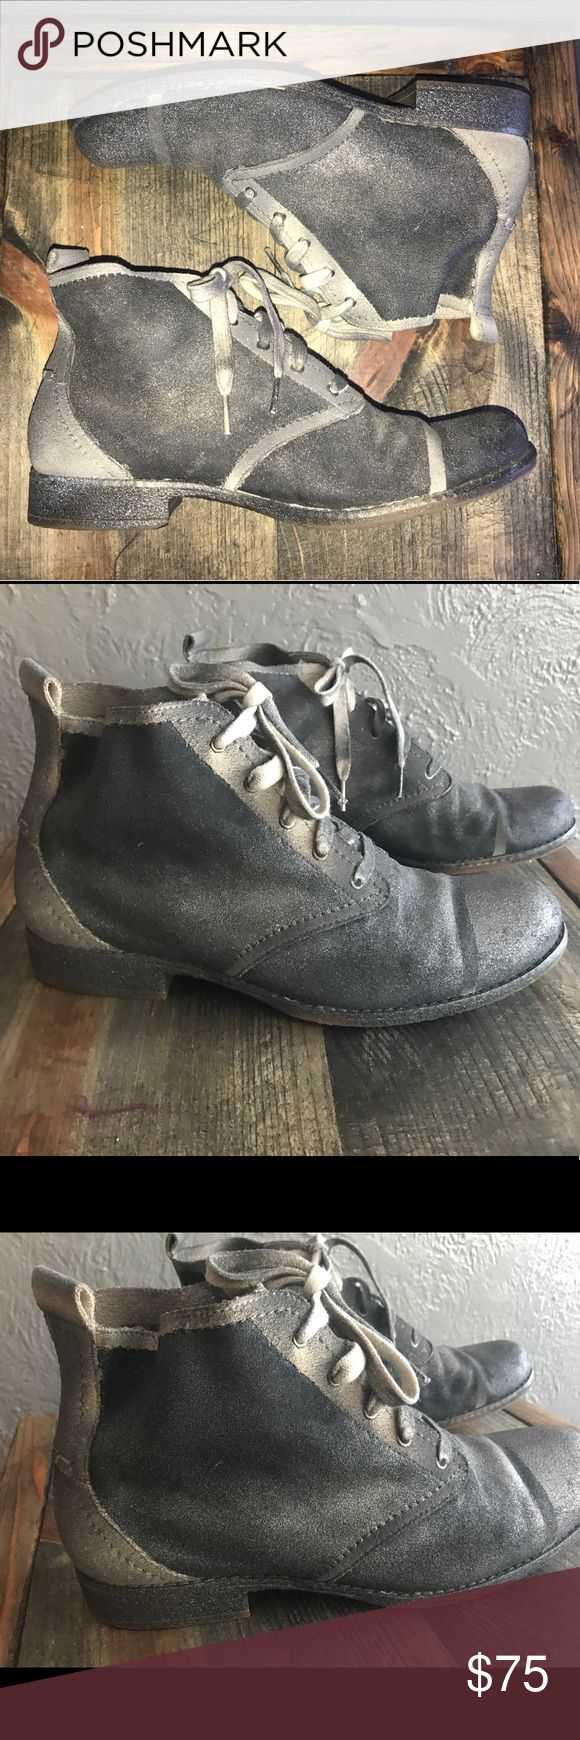 Timberlands gray Ombré sparkle boots Women's 11 Gorgeous rare Tims size 11 in mint condition! Timberland Shoes Combat & Moto Boots